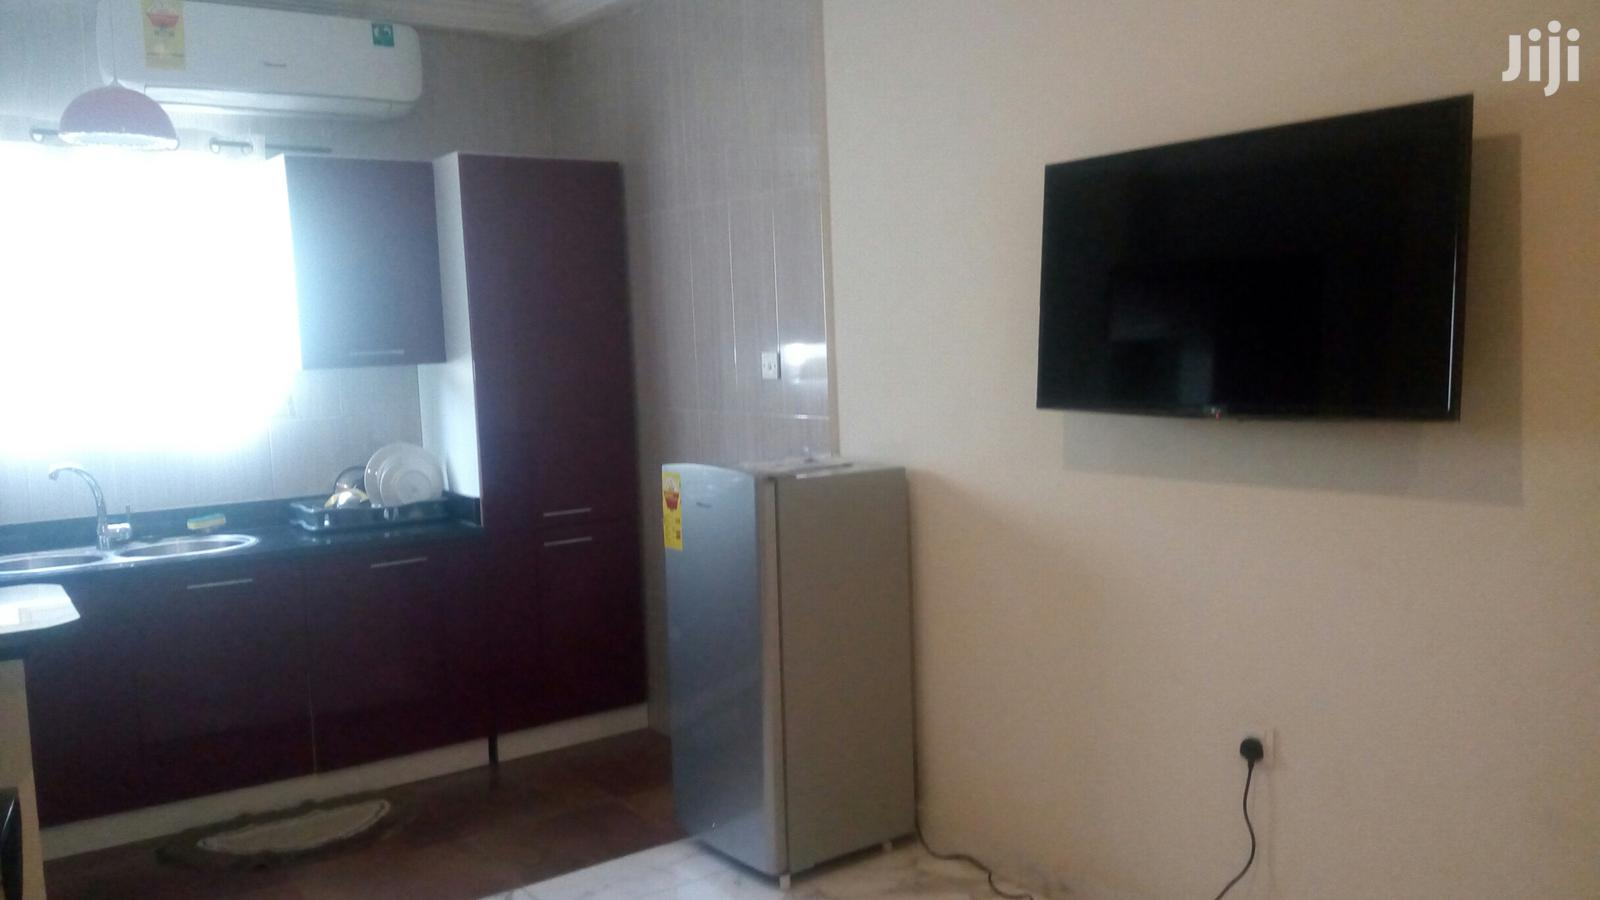 Fully Furnished 2 Bedroom Apartment For Rent At East Legon | Houses & Apartments For Rent for sale in East Legon, Greater Accra, Ghana